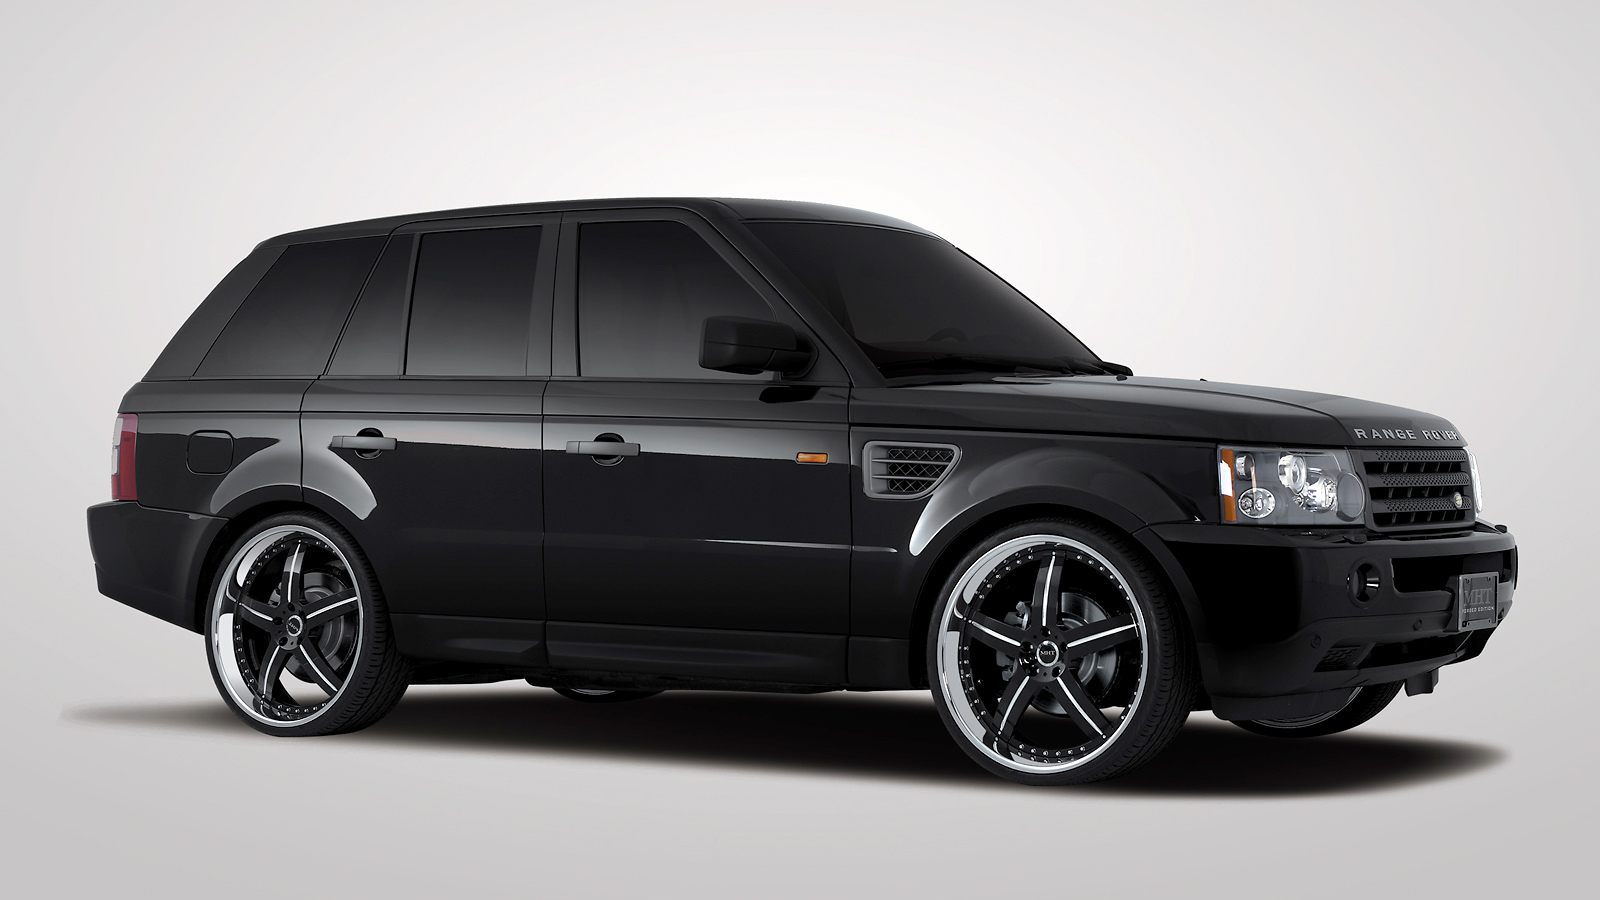 2008 land rover range rover information and photos momentcar. Black Bedroom Furniture Sets. Home Design Ideas